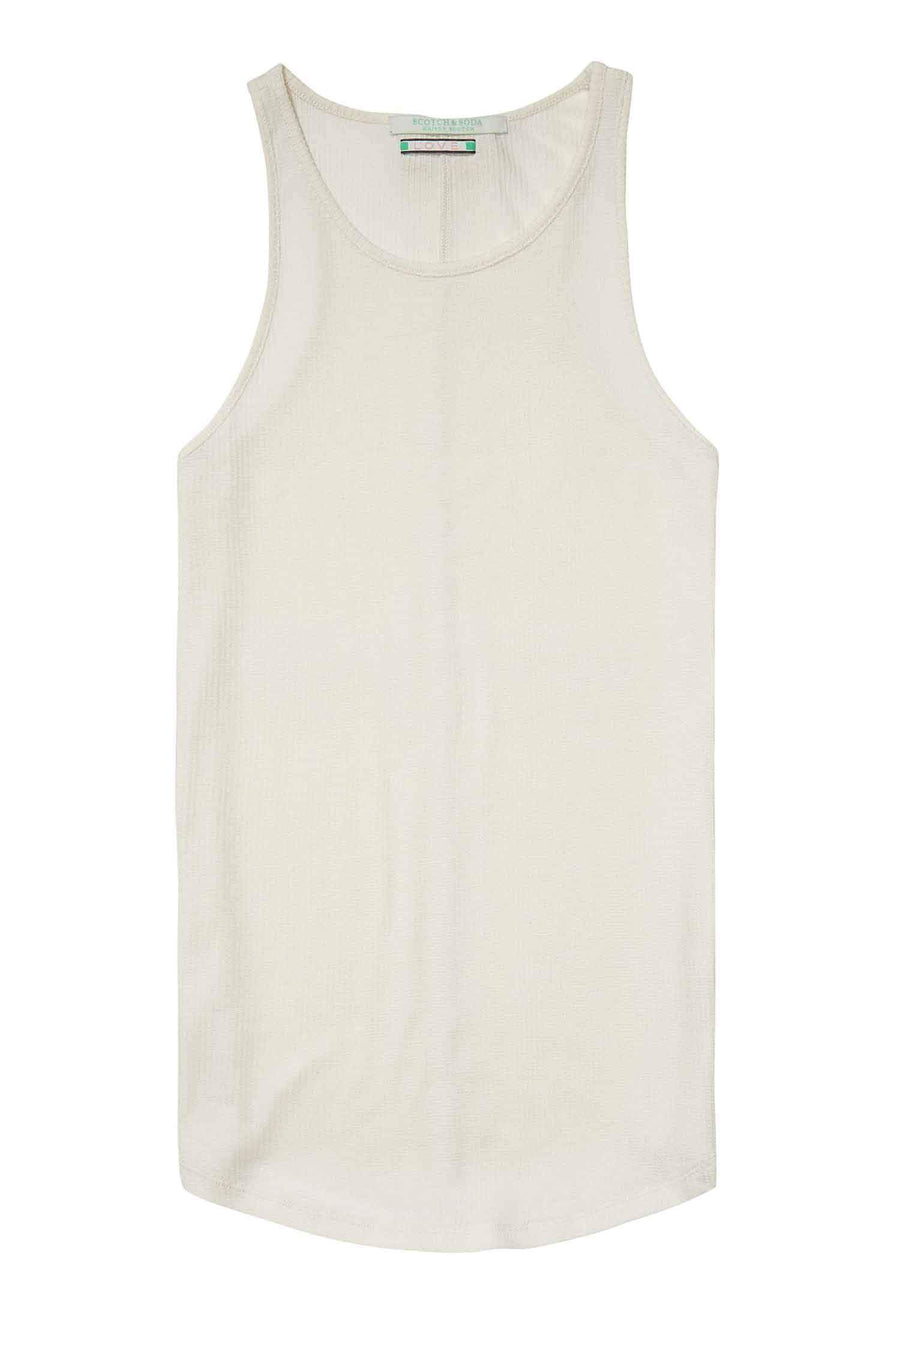 Shop Online Rib Tank Top in White by Maison Scotch  Frockaholics Tops